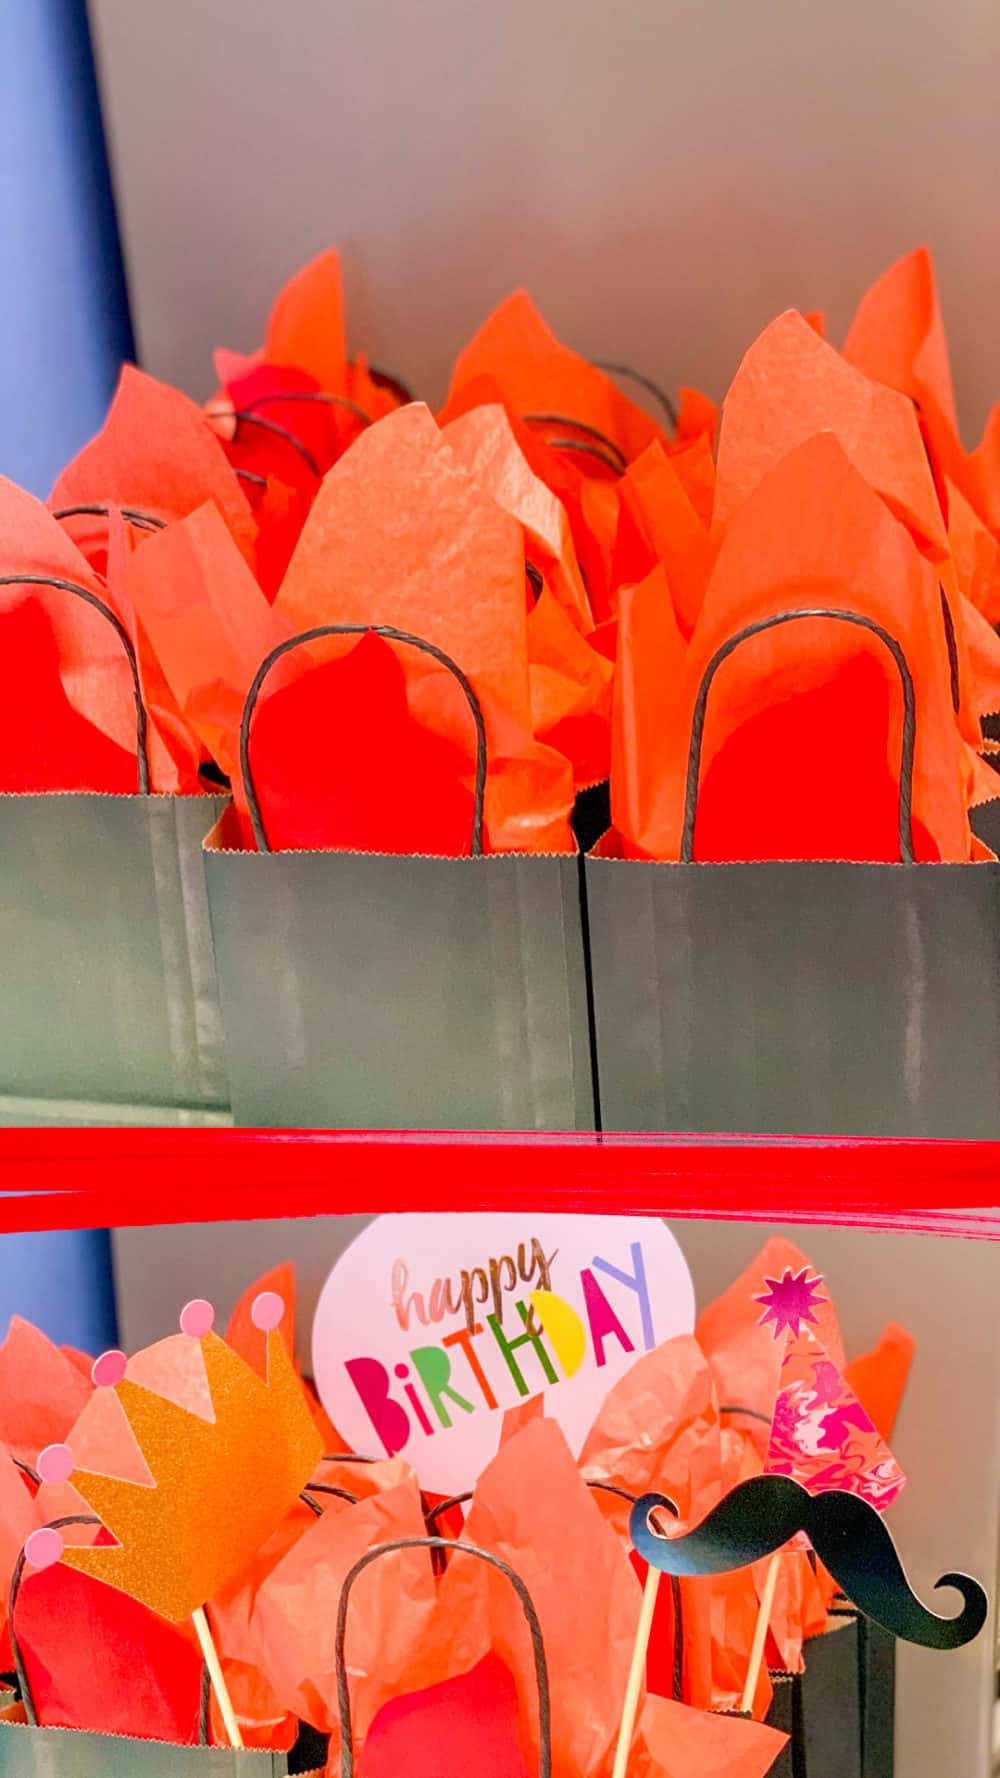 Firefighter Birthday Party Centerpieces